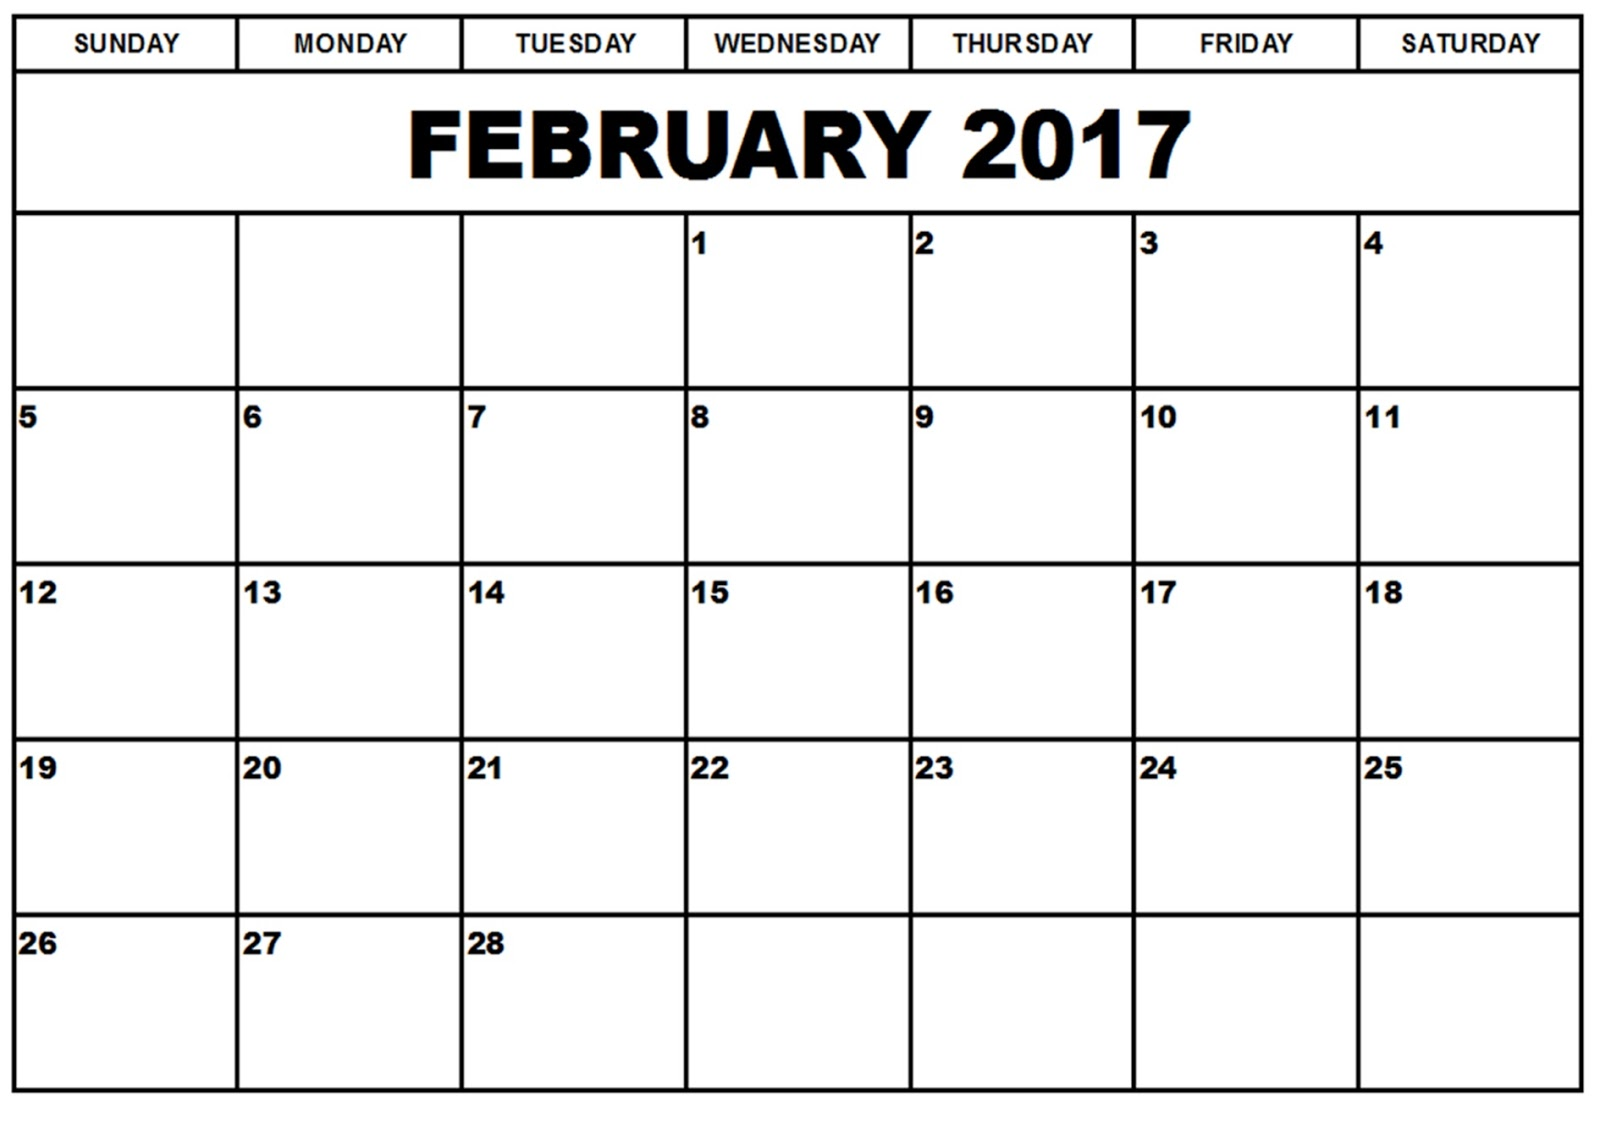 February 2017 Monthly Calendar Printable Templates - Printable ...